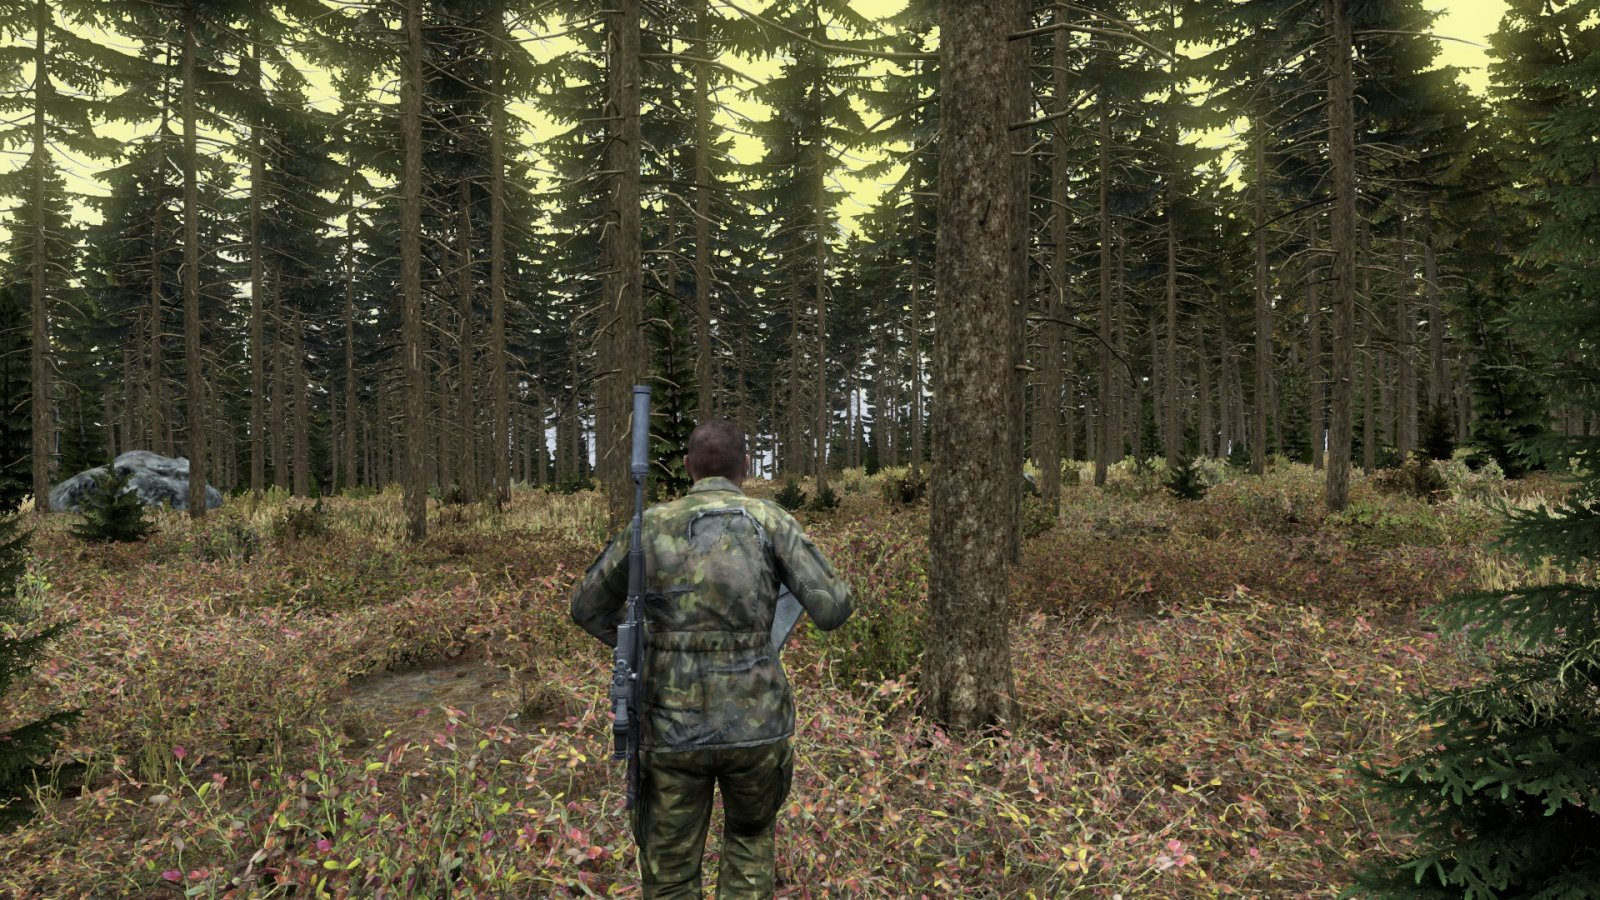 Forest 0.62